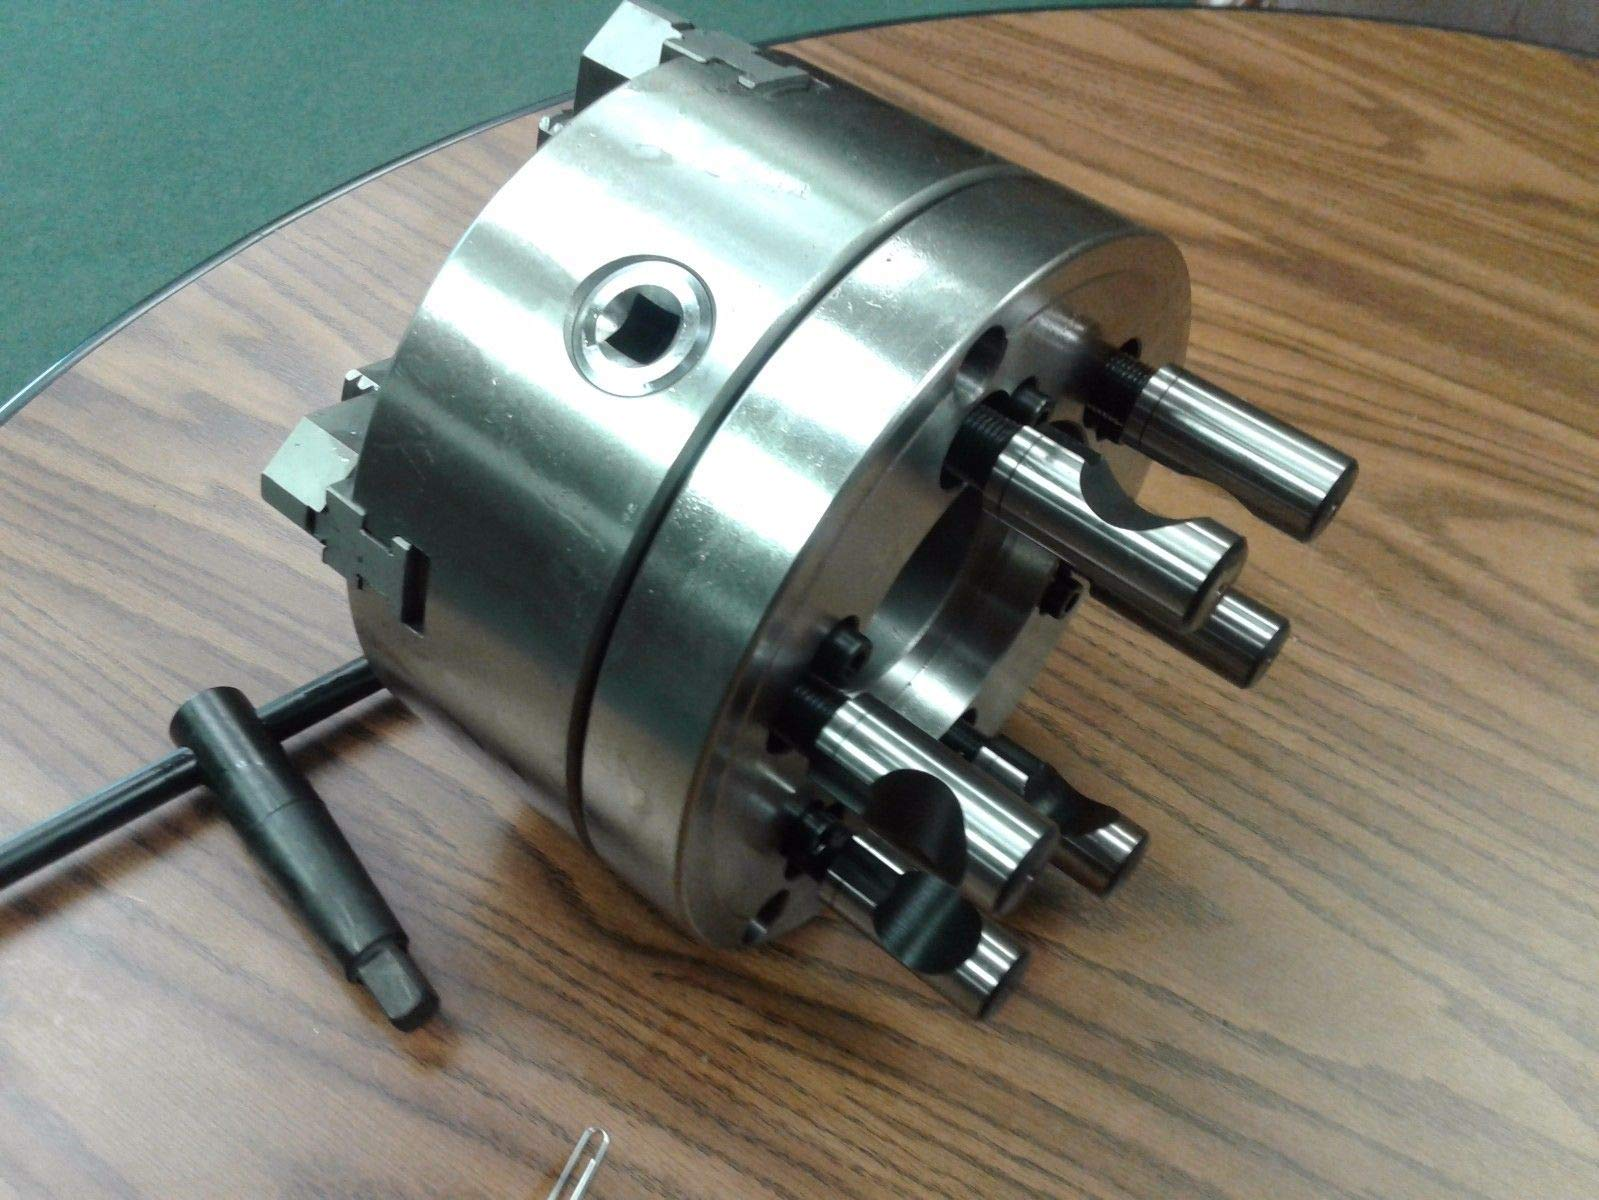 8'' 4-Jaw Self-Centering Lathe Chuck top&Bottom Jaws w. D1-6 Adapter Plate-New by CME (Image #3)